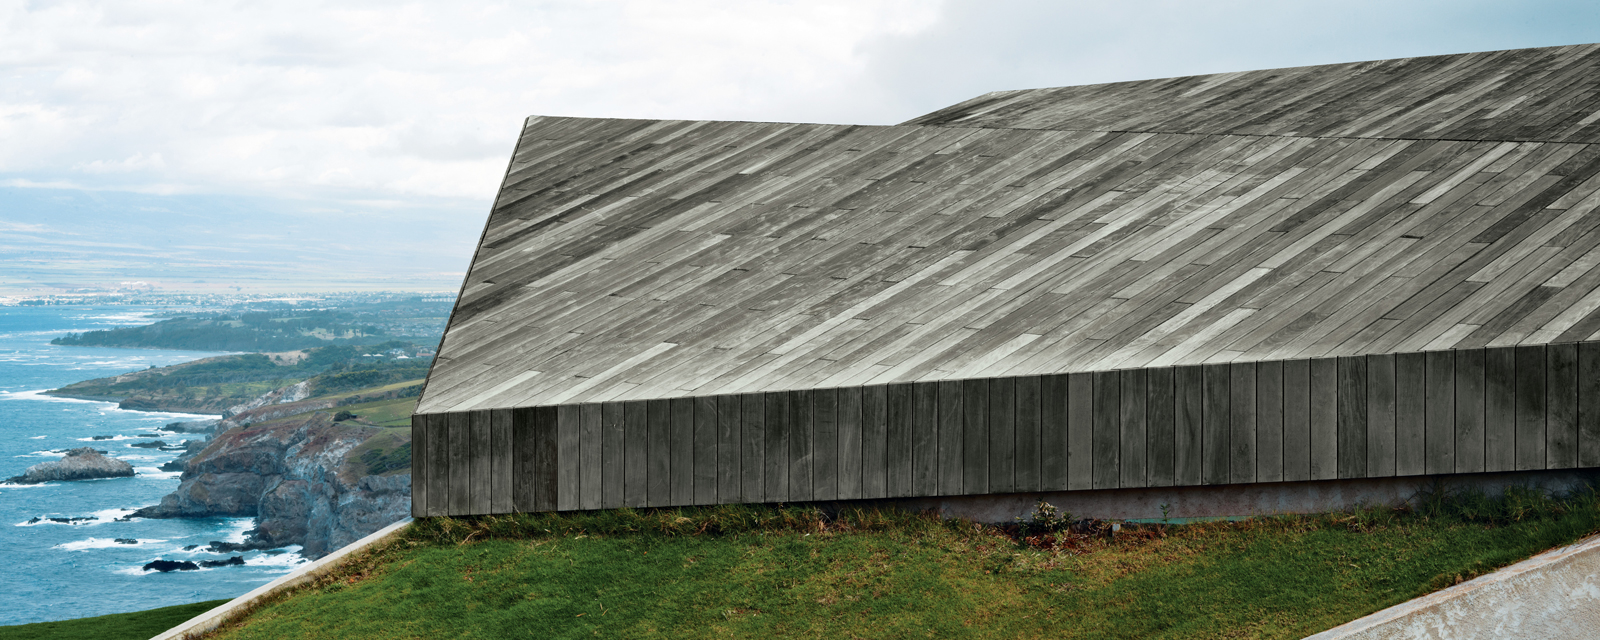 Roof of Clifftop House.